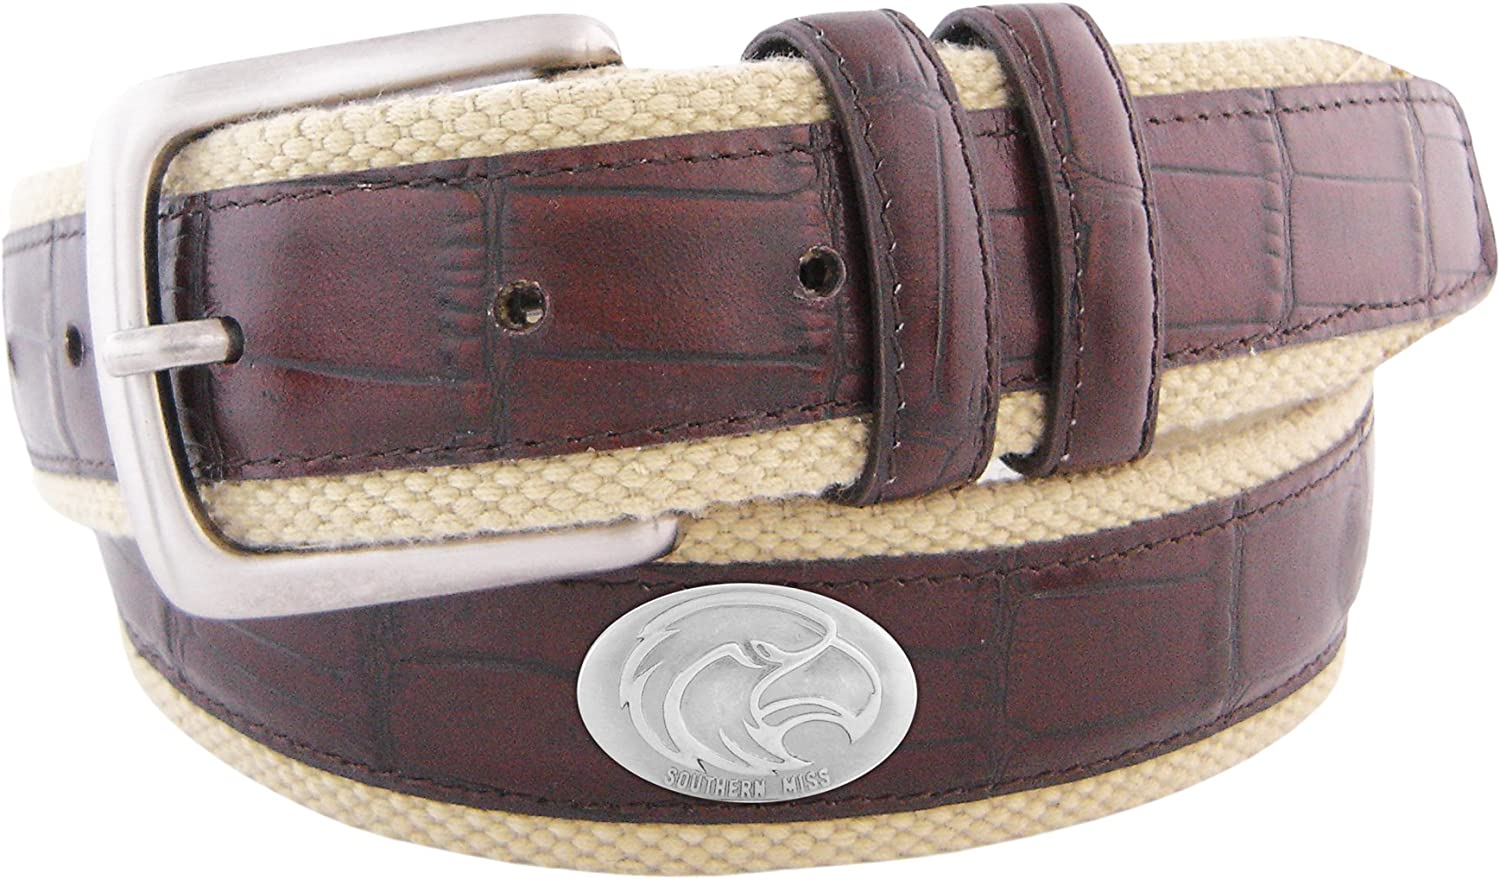 NCAA Southern Miss Golden Eagles Croc Leather Webbing Concho Belt Brown 36-Inch